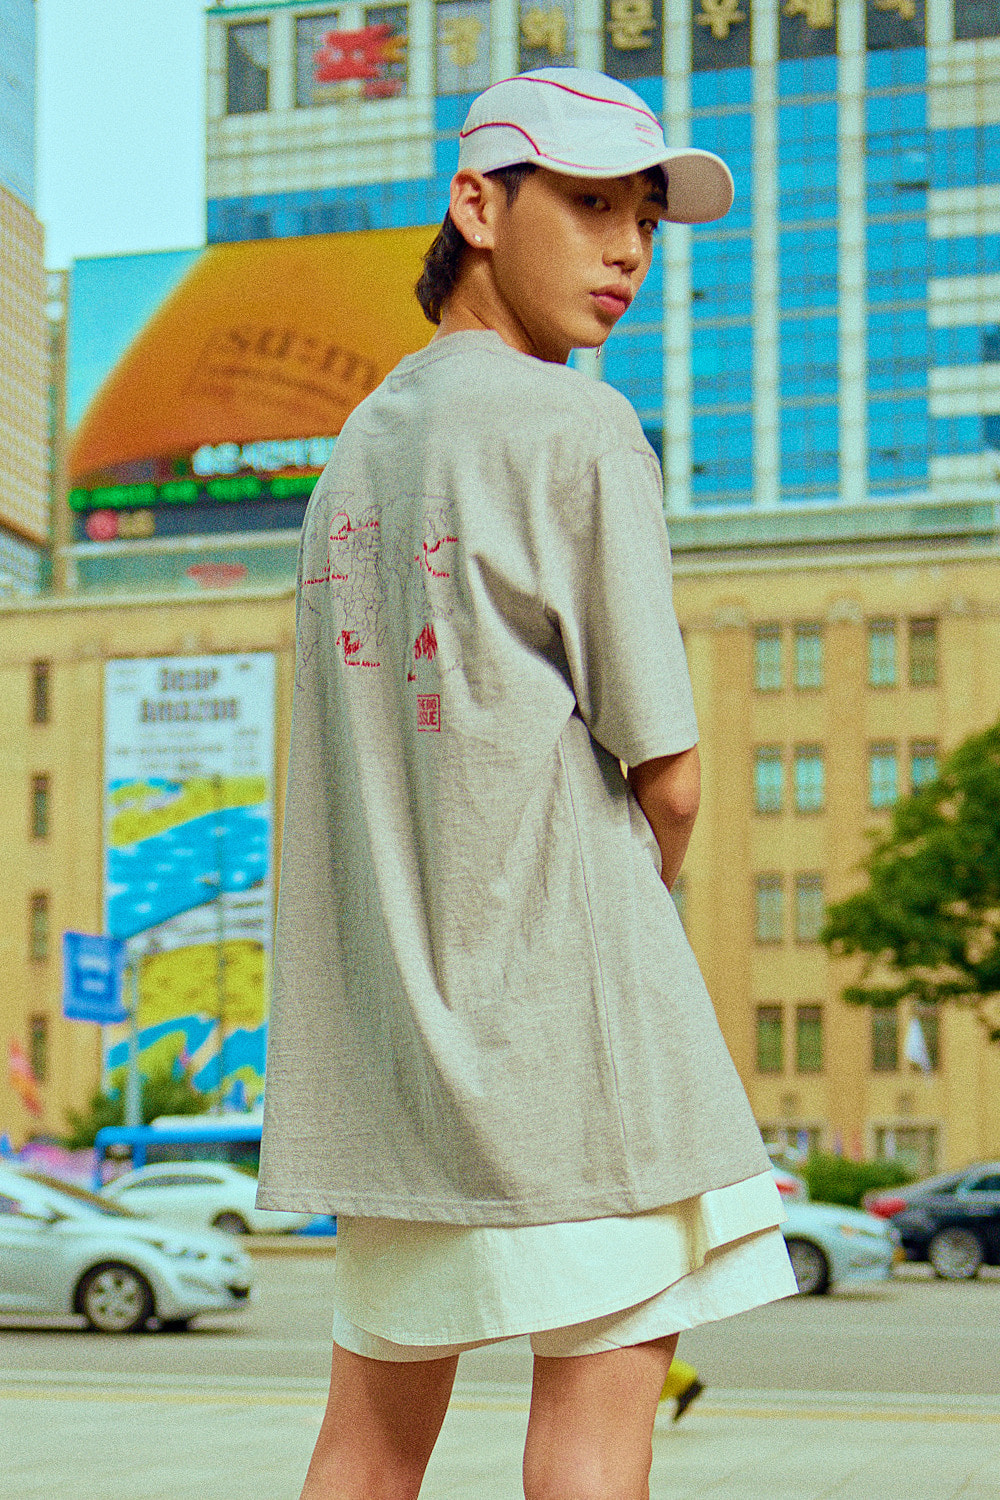 SWBD X BIG ISSUE MAP T-SHIRT (GRAY)